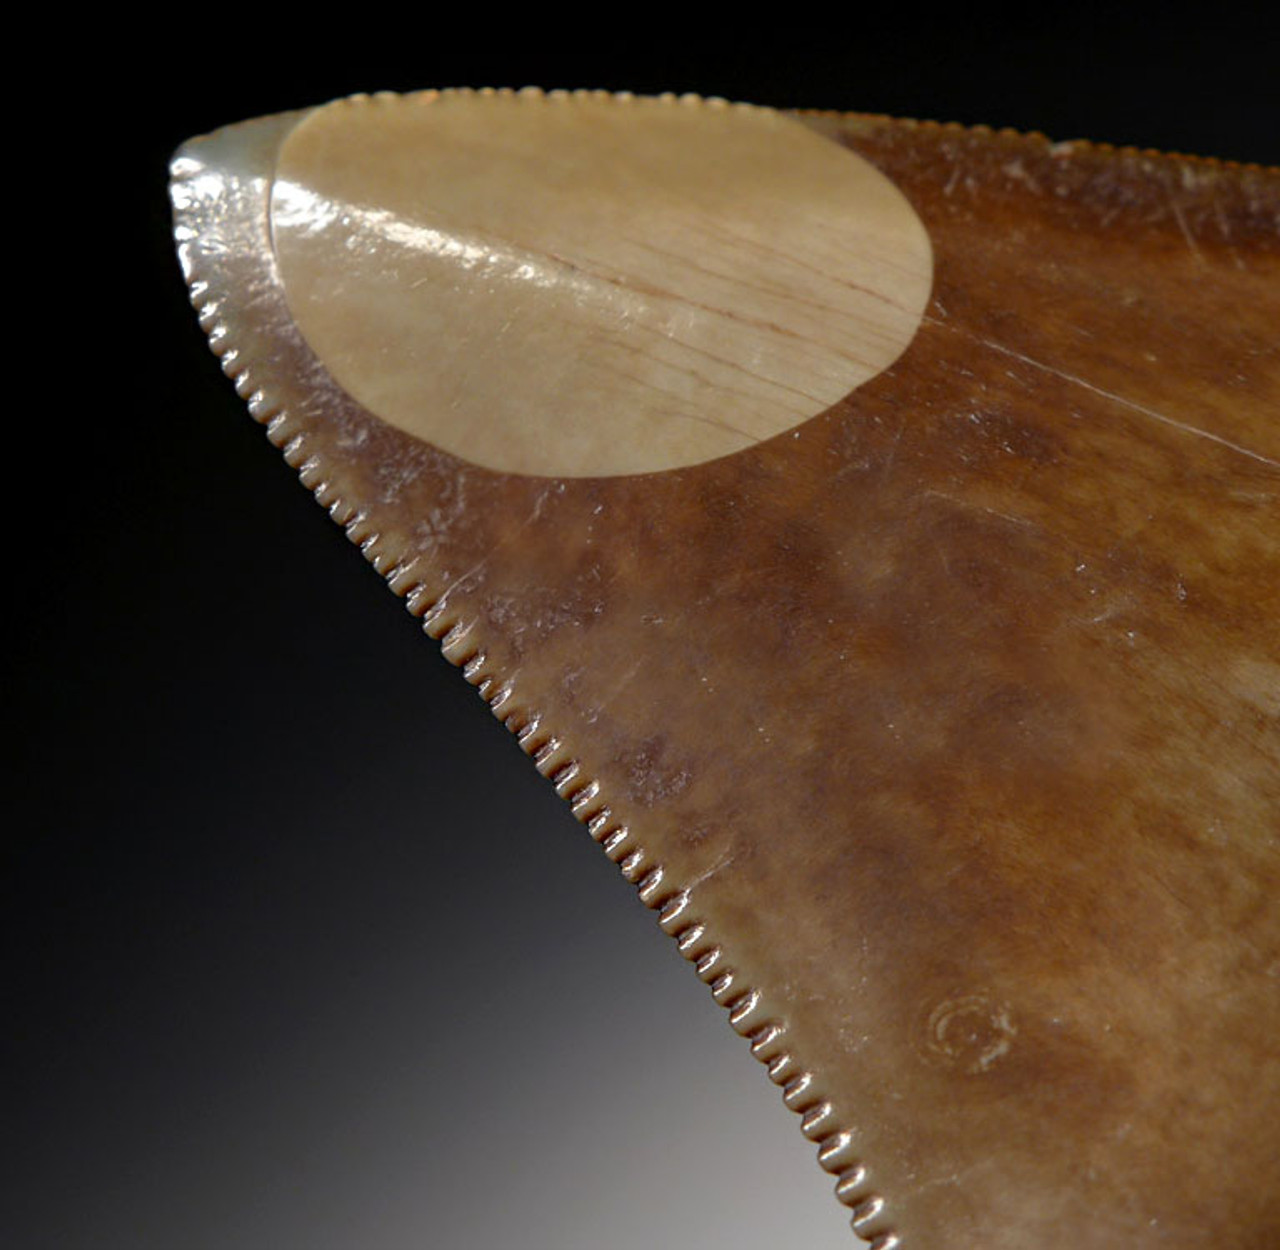 SH6-308 - FINEST QUALITY 3.75 INCH MEGALODON SHARK TOOTH WITH BIZARRE SPOTTING